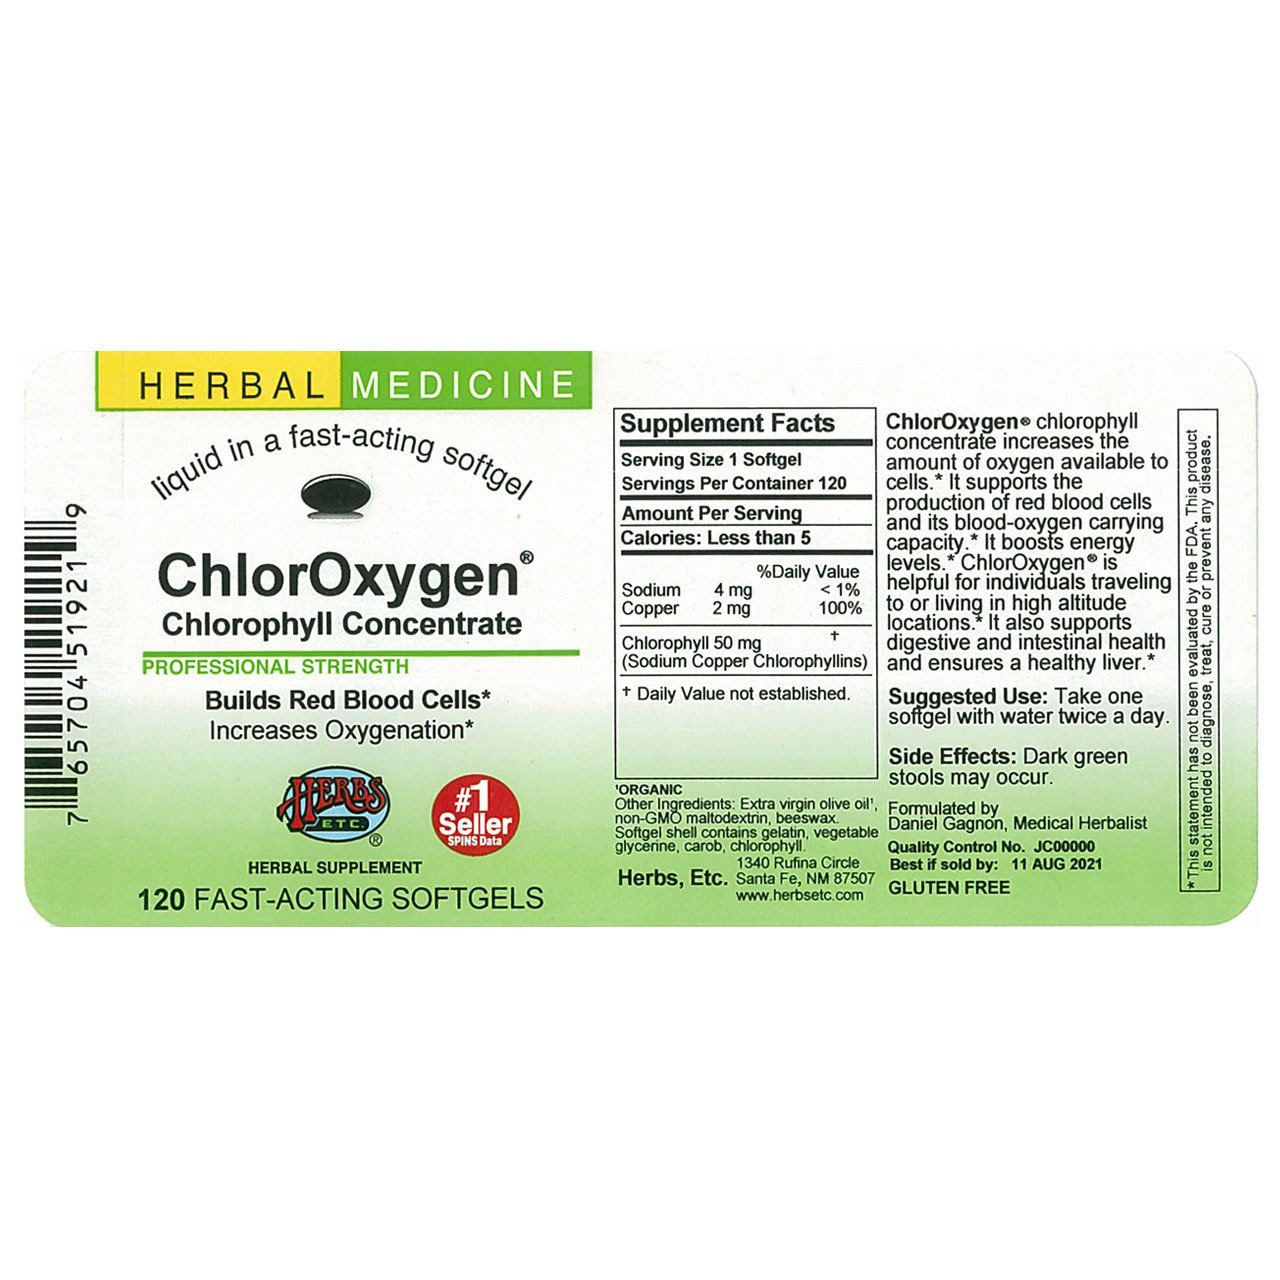 Herbs Etc ChlorOxygen Chlorophyll Concentrate Alcohol Free 120 Fast-Acting Softgels